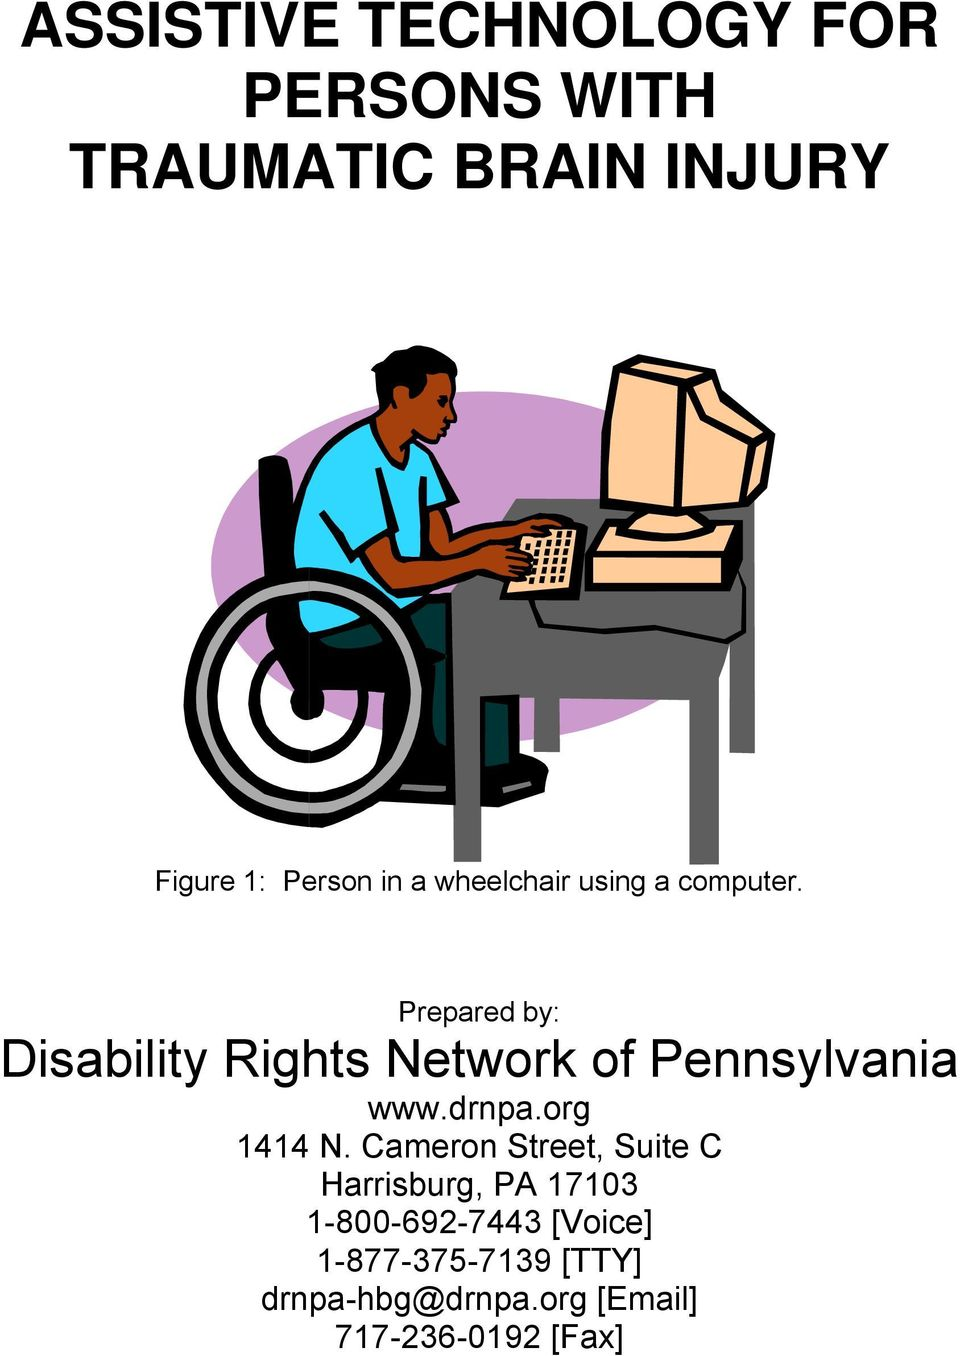 Prepared by: Disability Rights Network of Pennsylvania www.drnpa.org 1414 N.